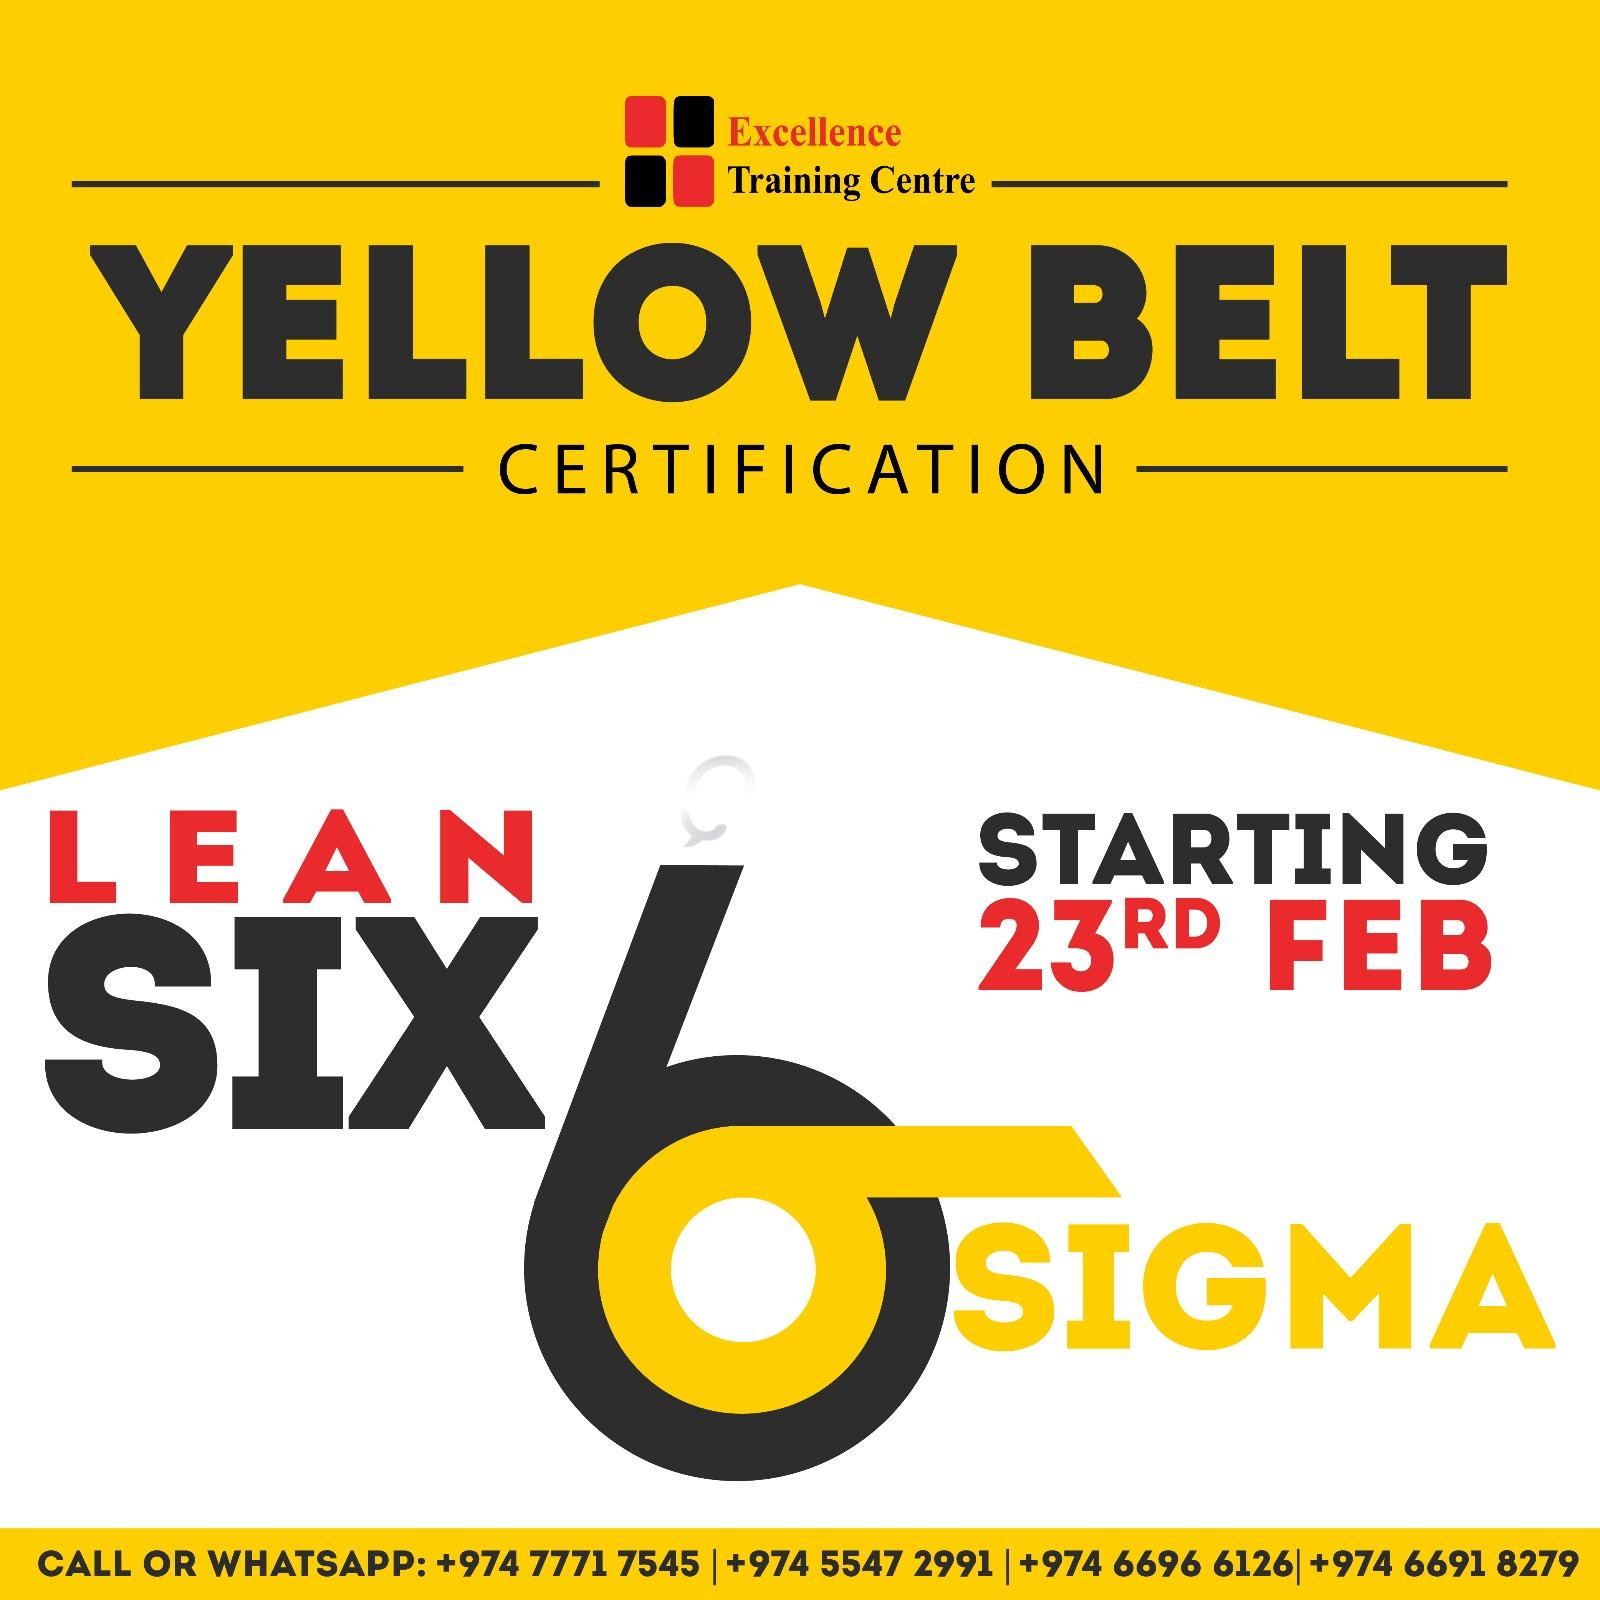 Lean Six Sigma Certification Yellow Belt Course Starting From 23rd